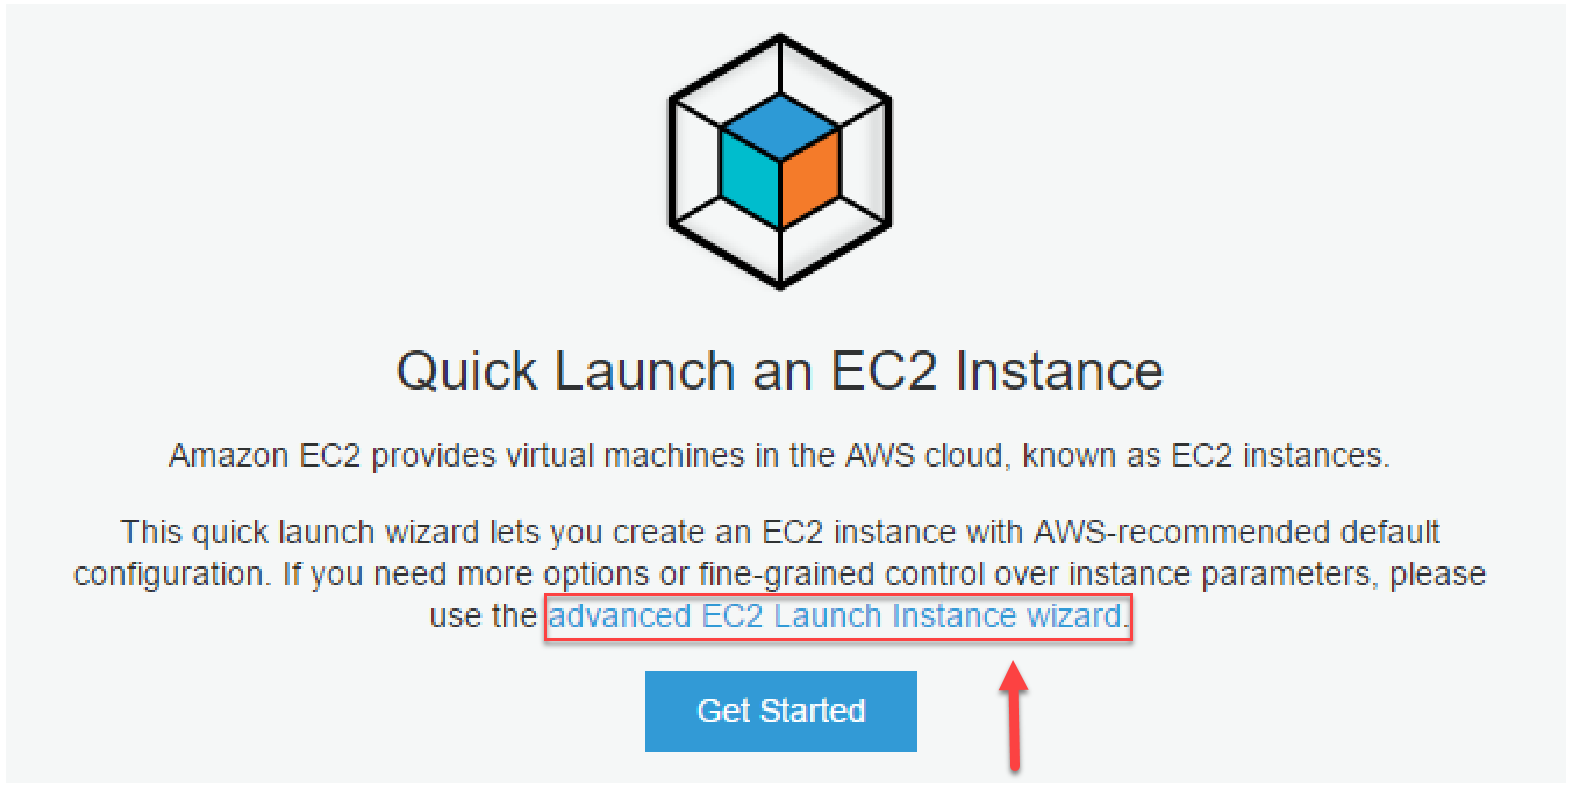 EC2 advnaced Launch instance wizard